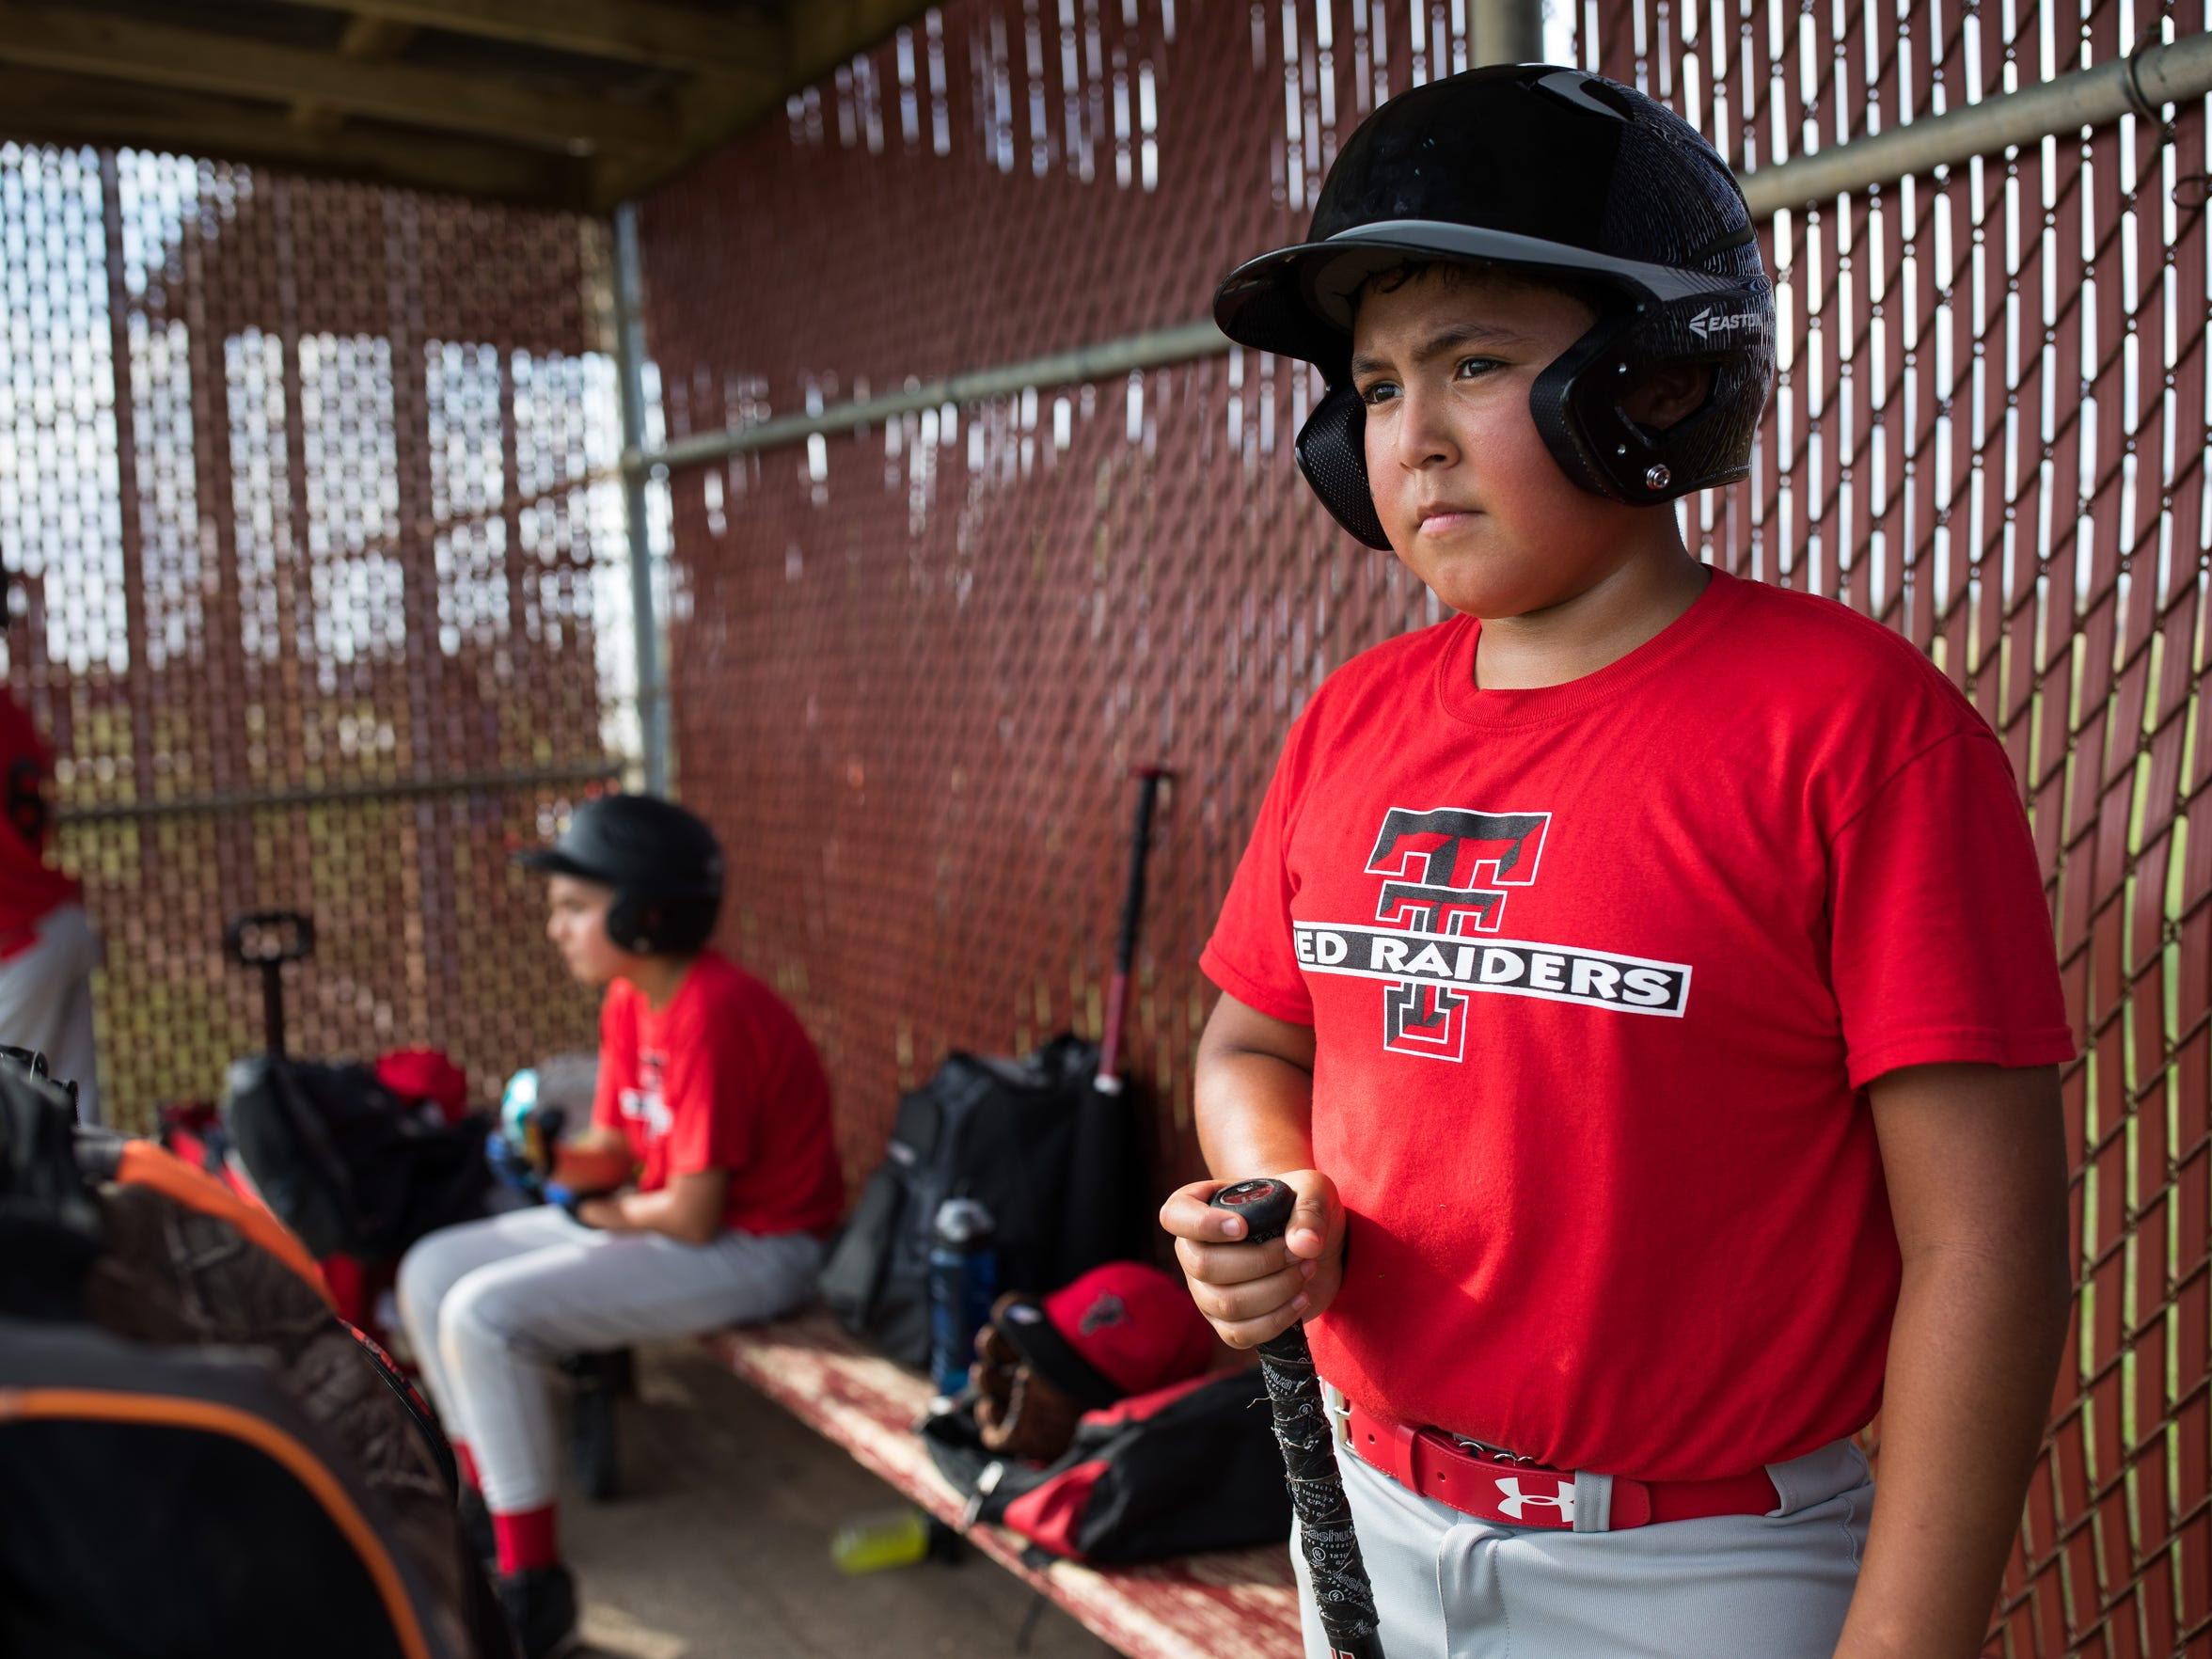 Monica Rocha's youngest son 10-year-old Hector Palacios stands in the dugout during a baseball game at Lyondell park on Sunday, Oct. 15, 2017.